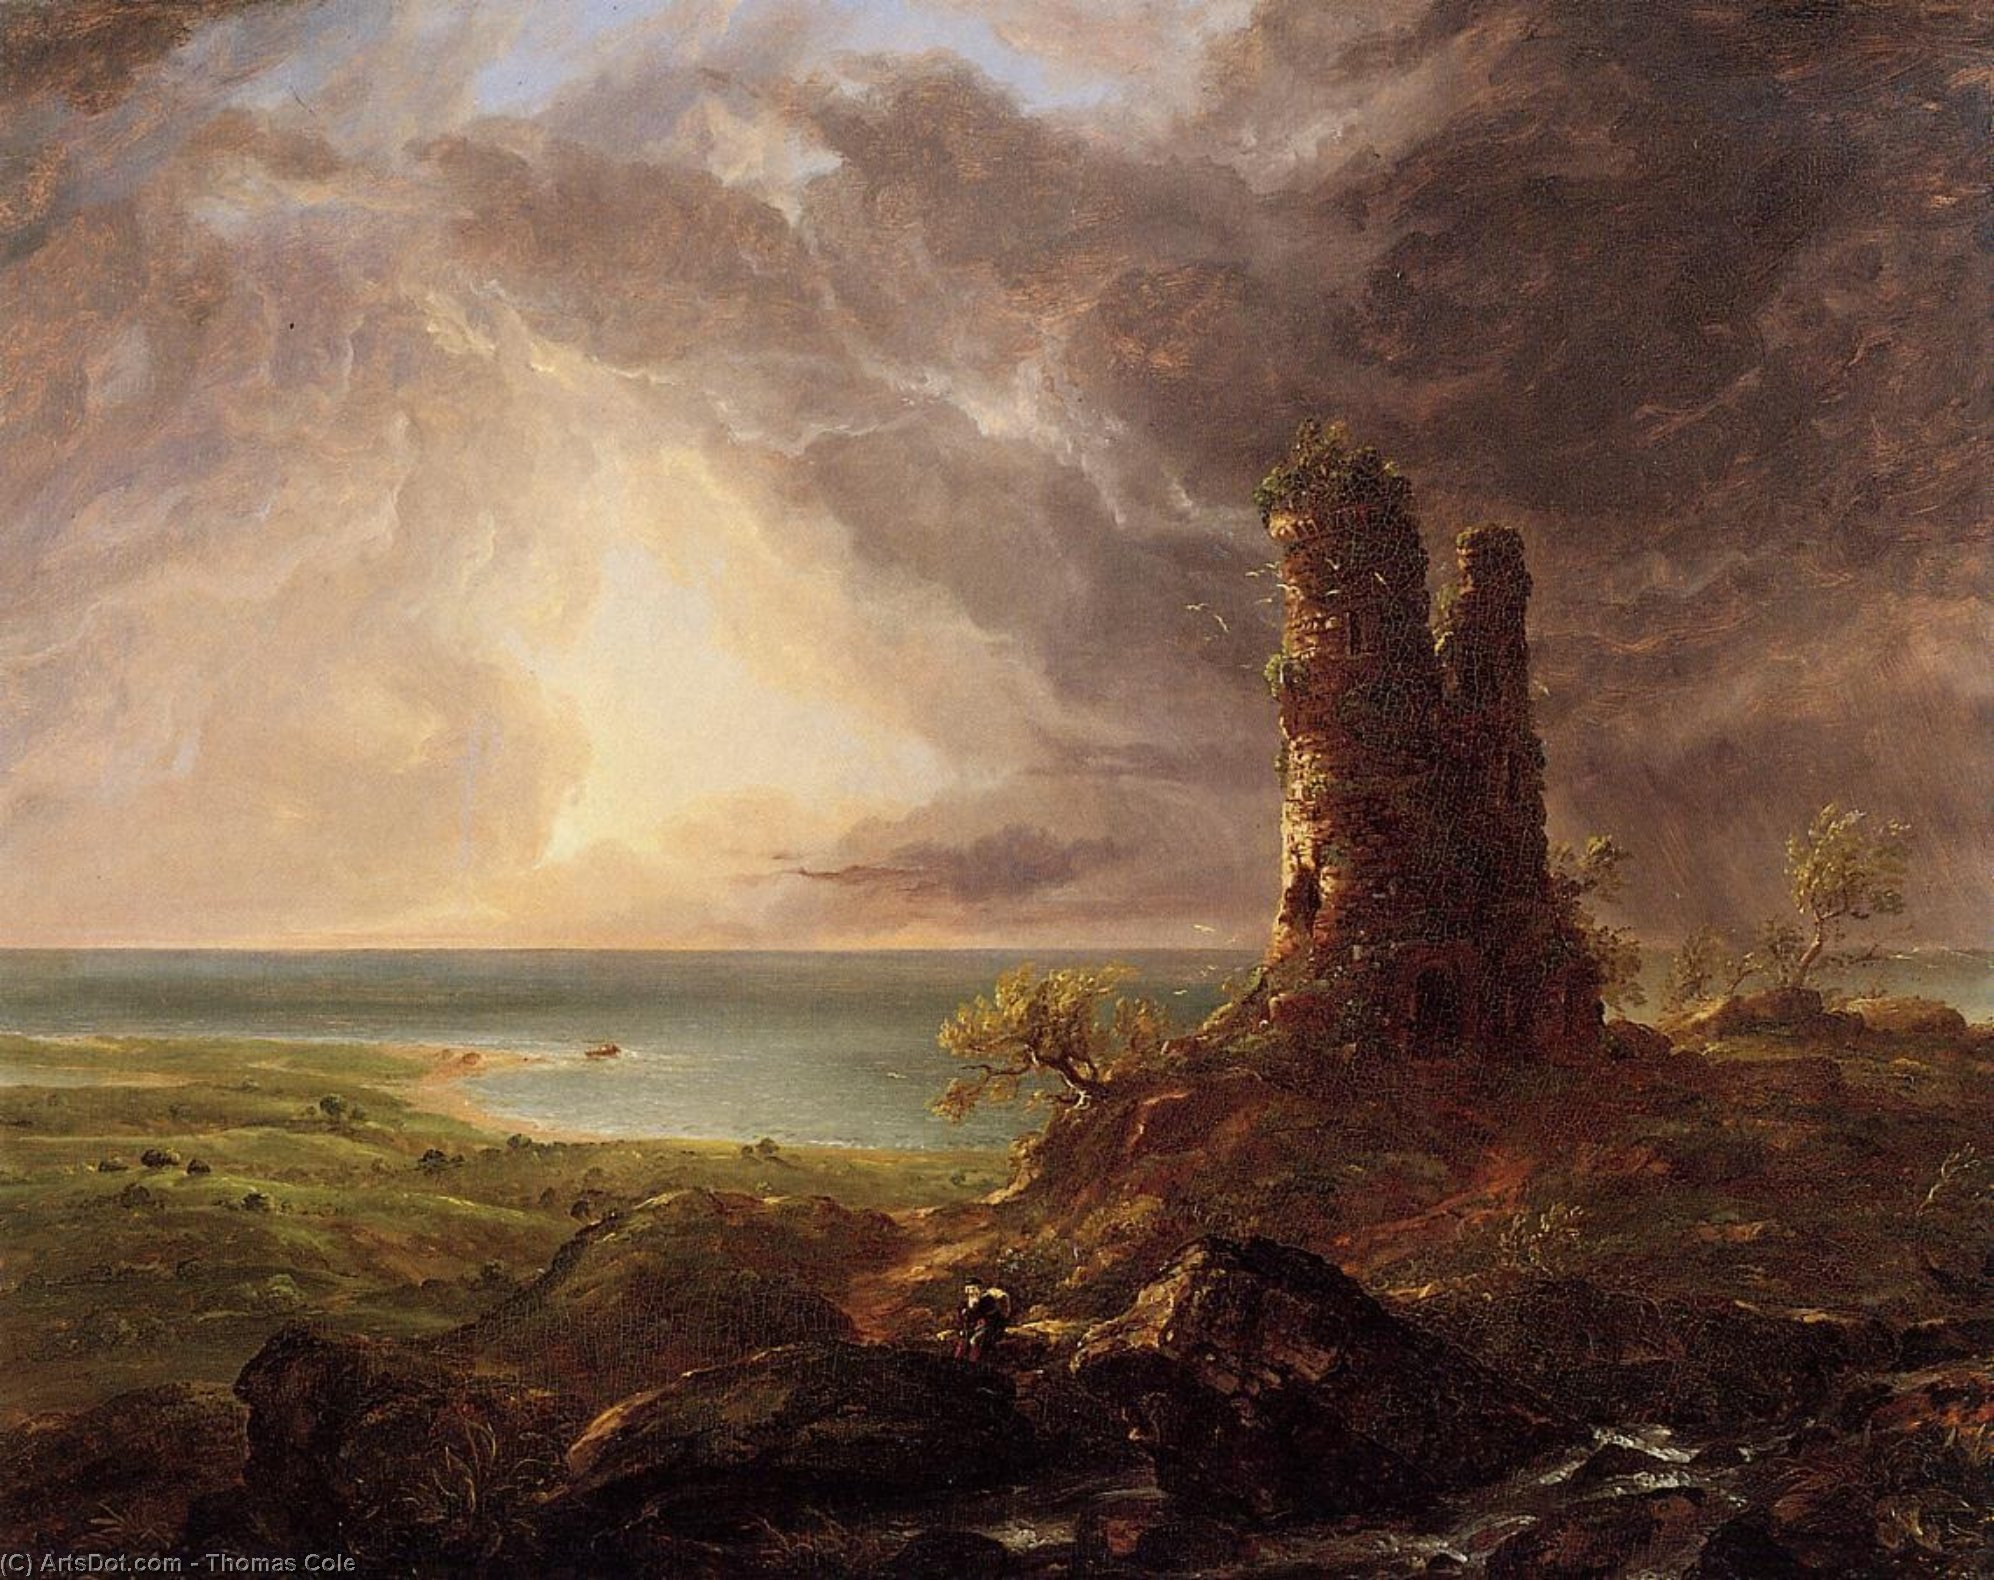 Romantic Landscape with Ruined Tower, Oil by Thomas Cole (1801-1848, United Kingdom)